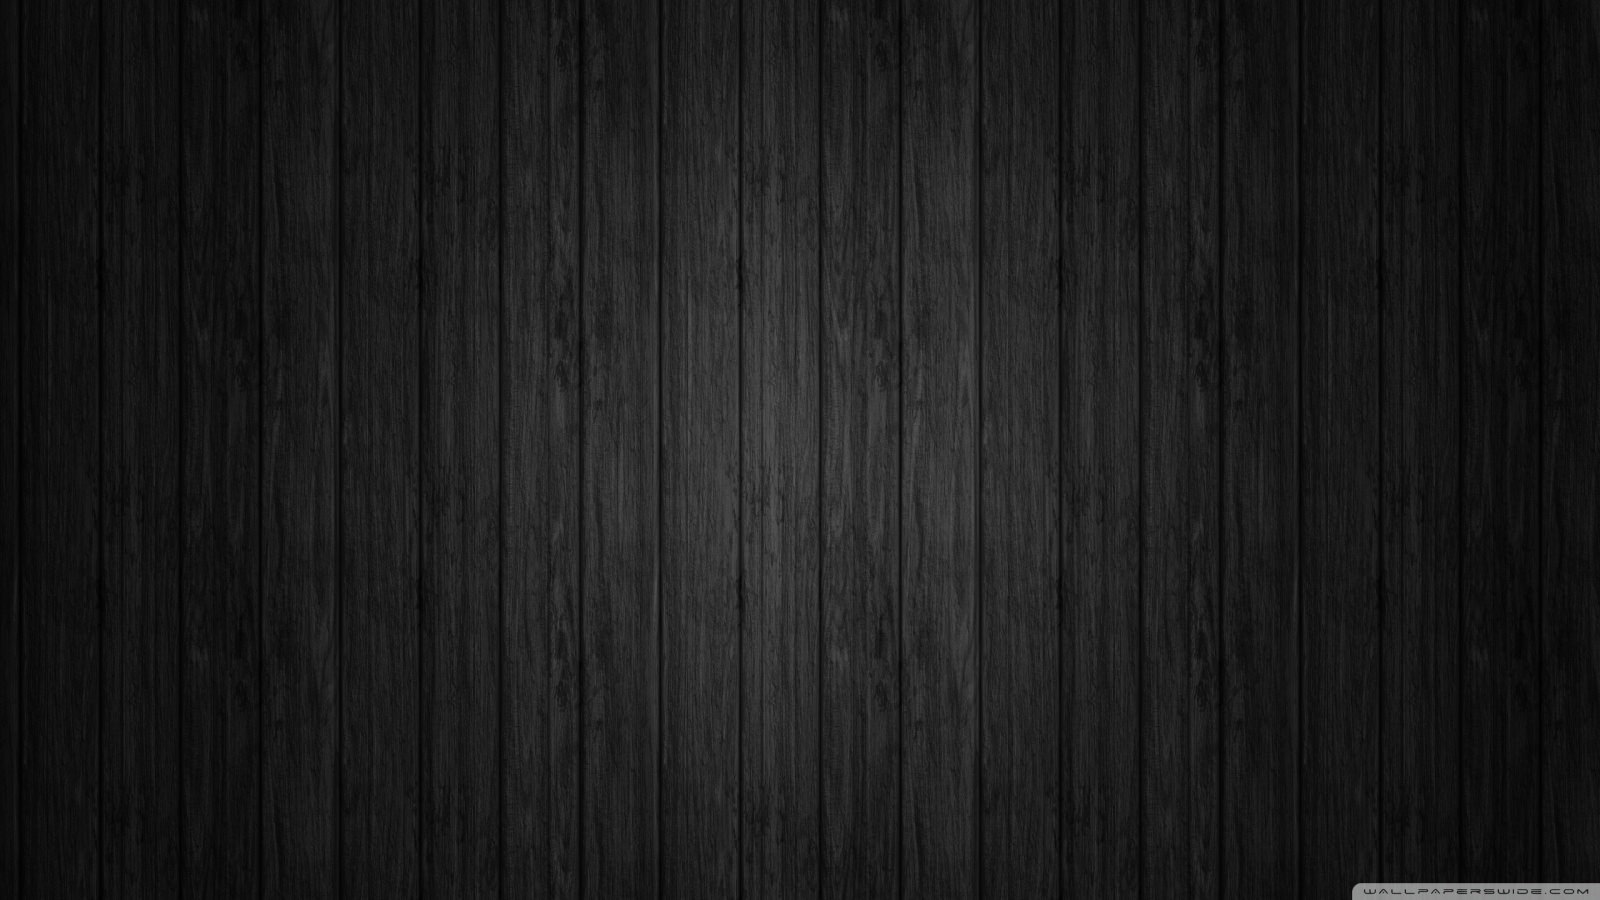 Free Black Hardwood Background